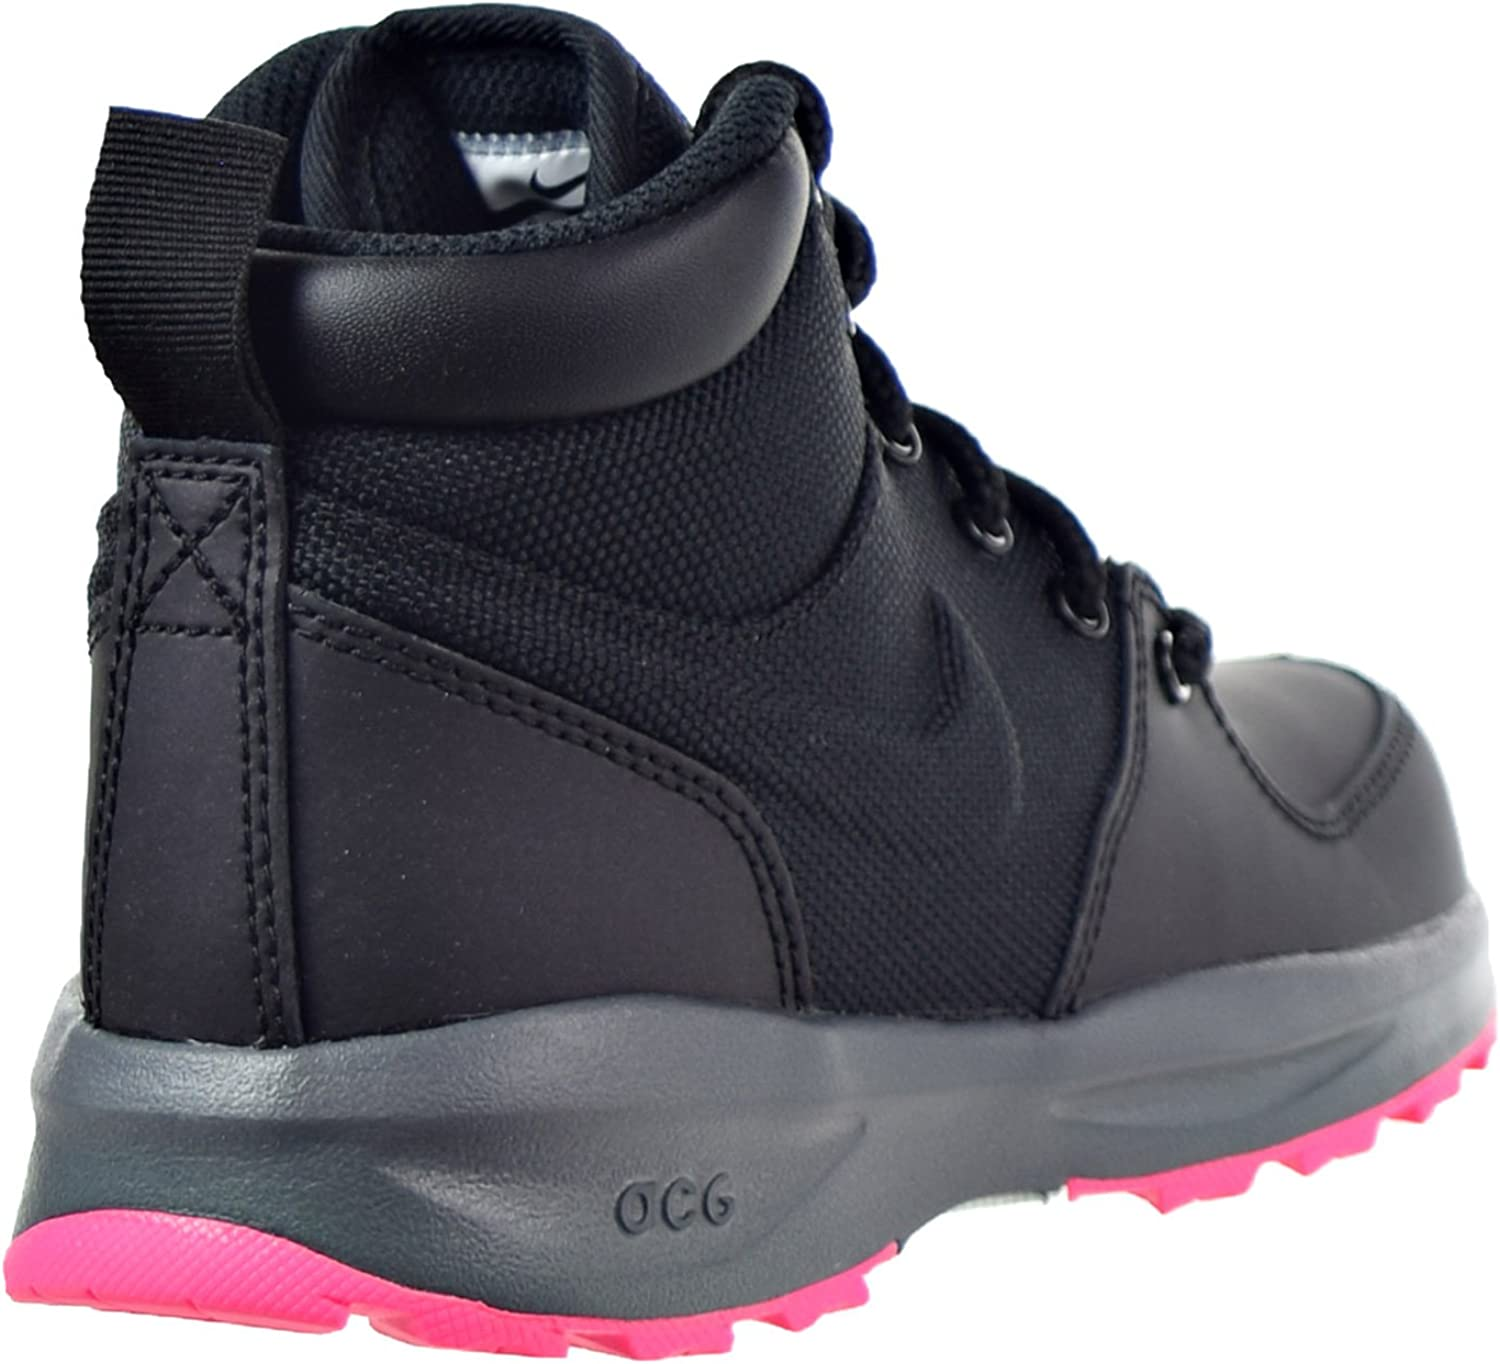 PS Boots Black//Hyper Pink 859413-006 Nike Manoa Little Kids